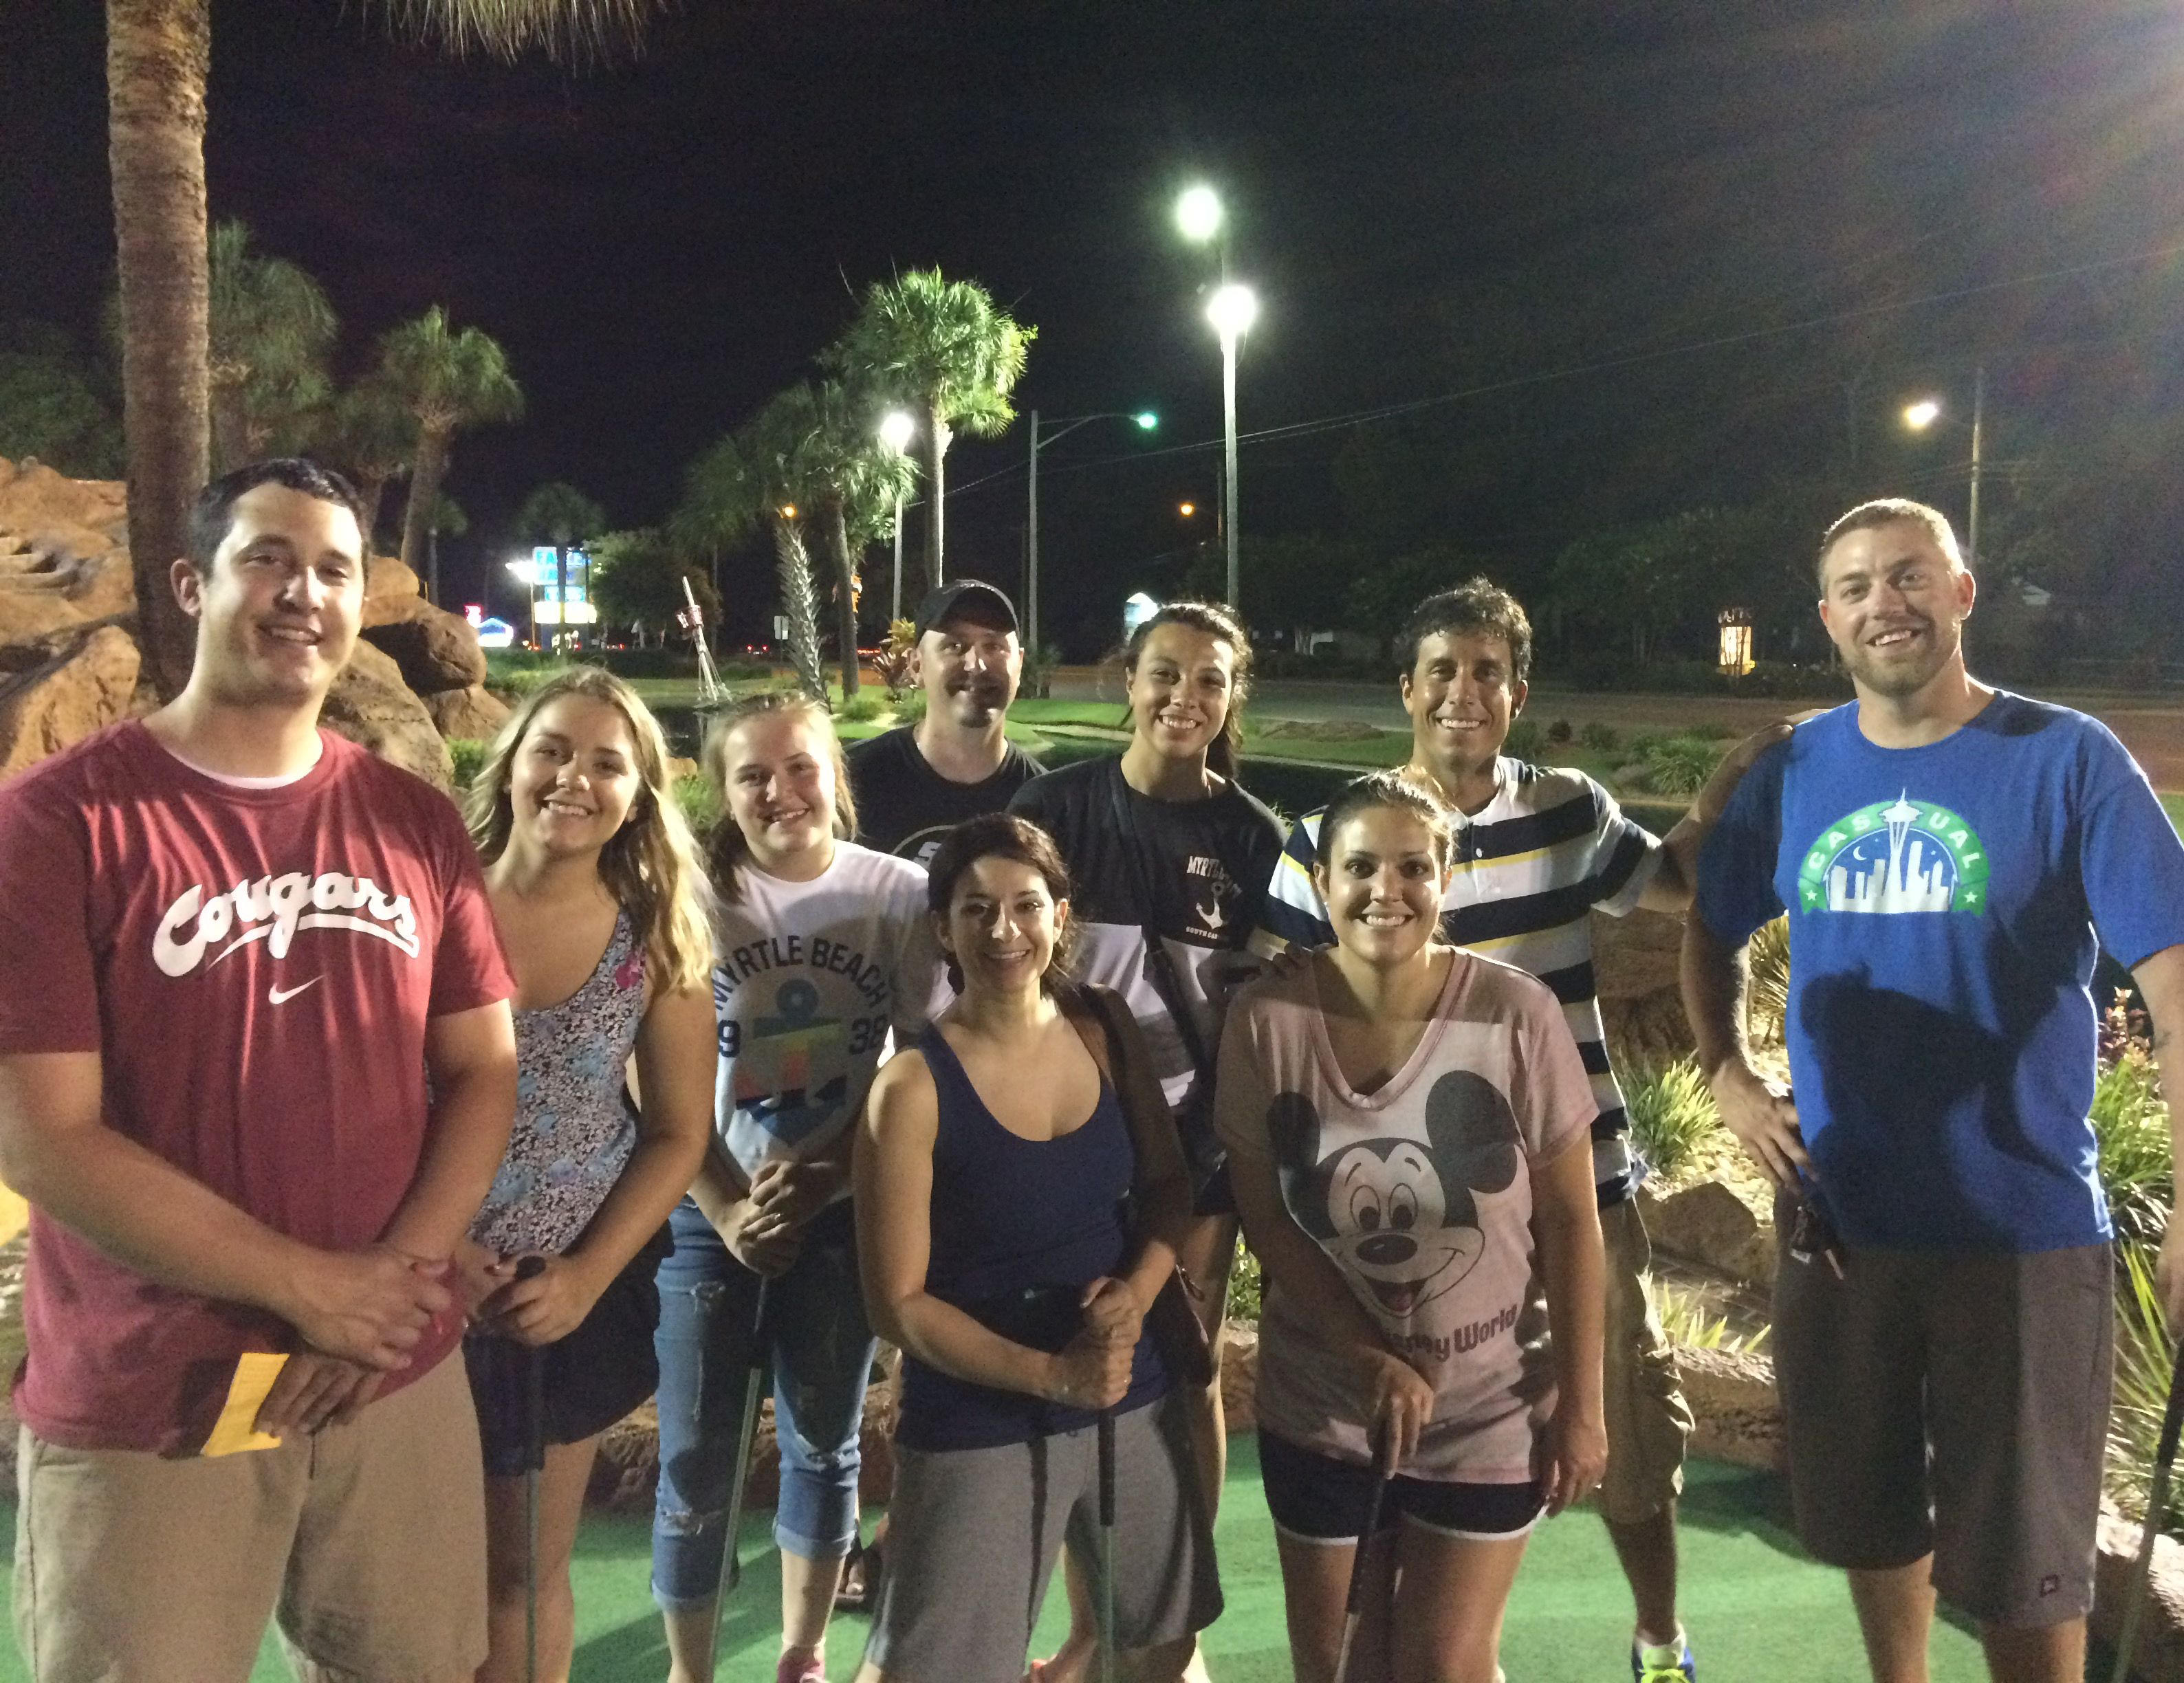 It was so nice having family in Myrtle Beach. On our wedding night, Sid and I played putt putt with this fun group!